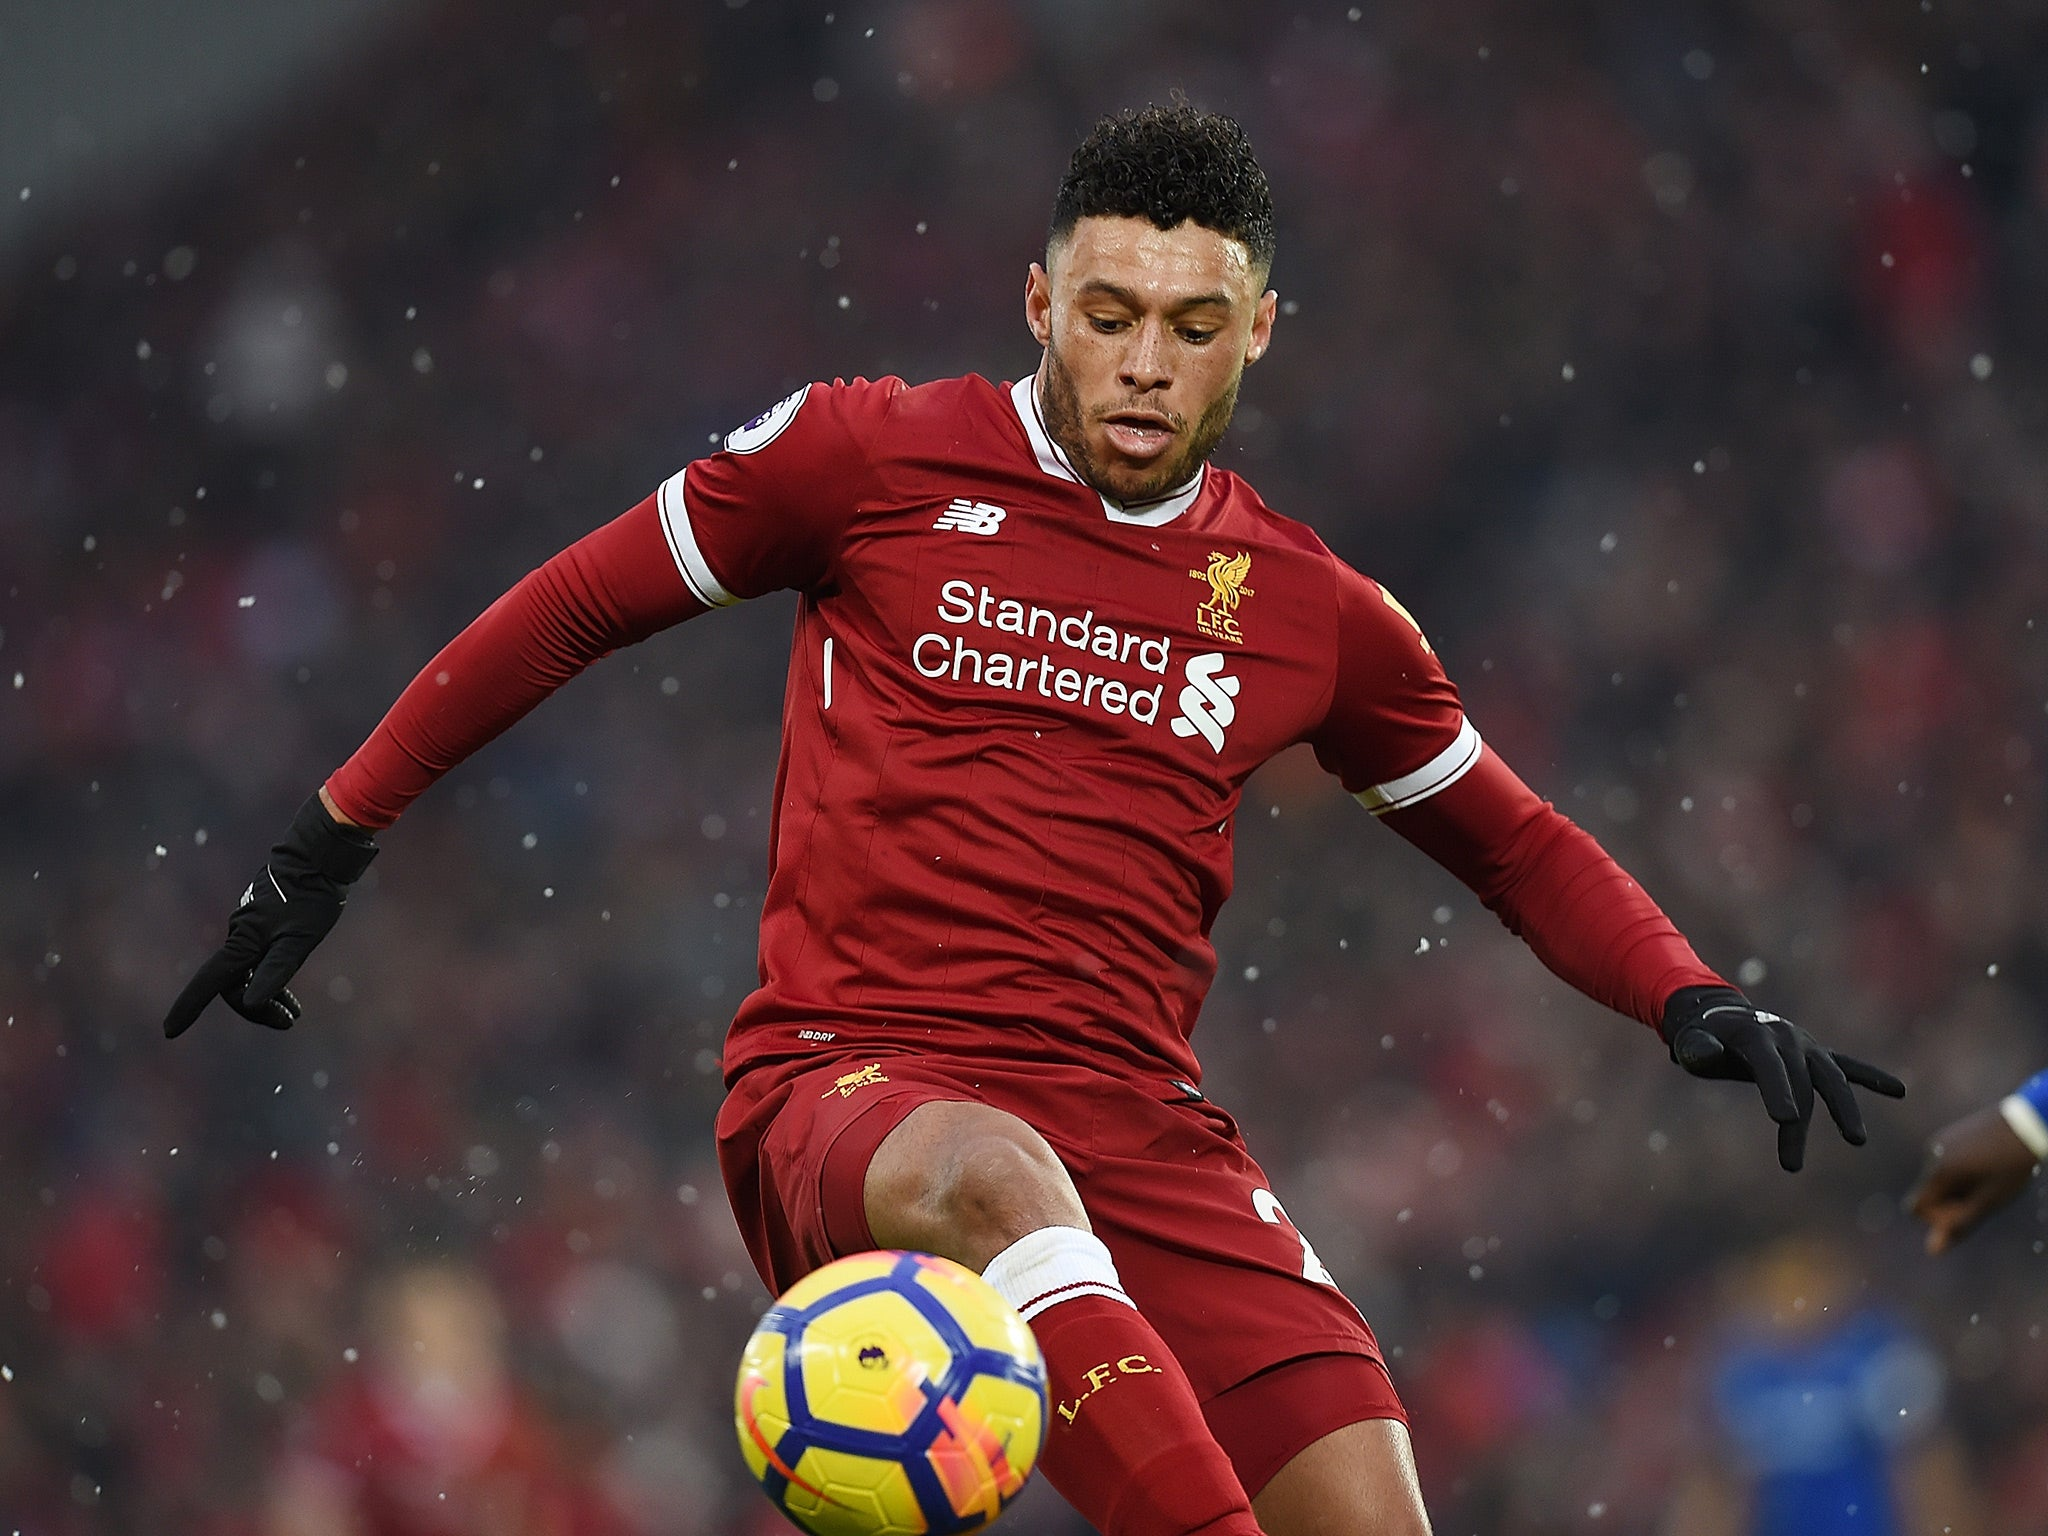 Liverpool New Boy Alex Oxlade-Chamberlain Is Ready To Show